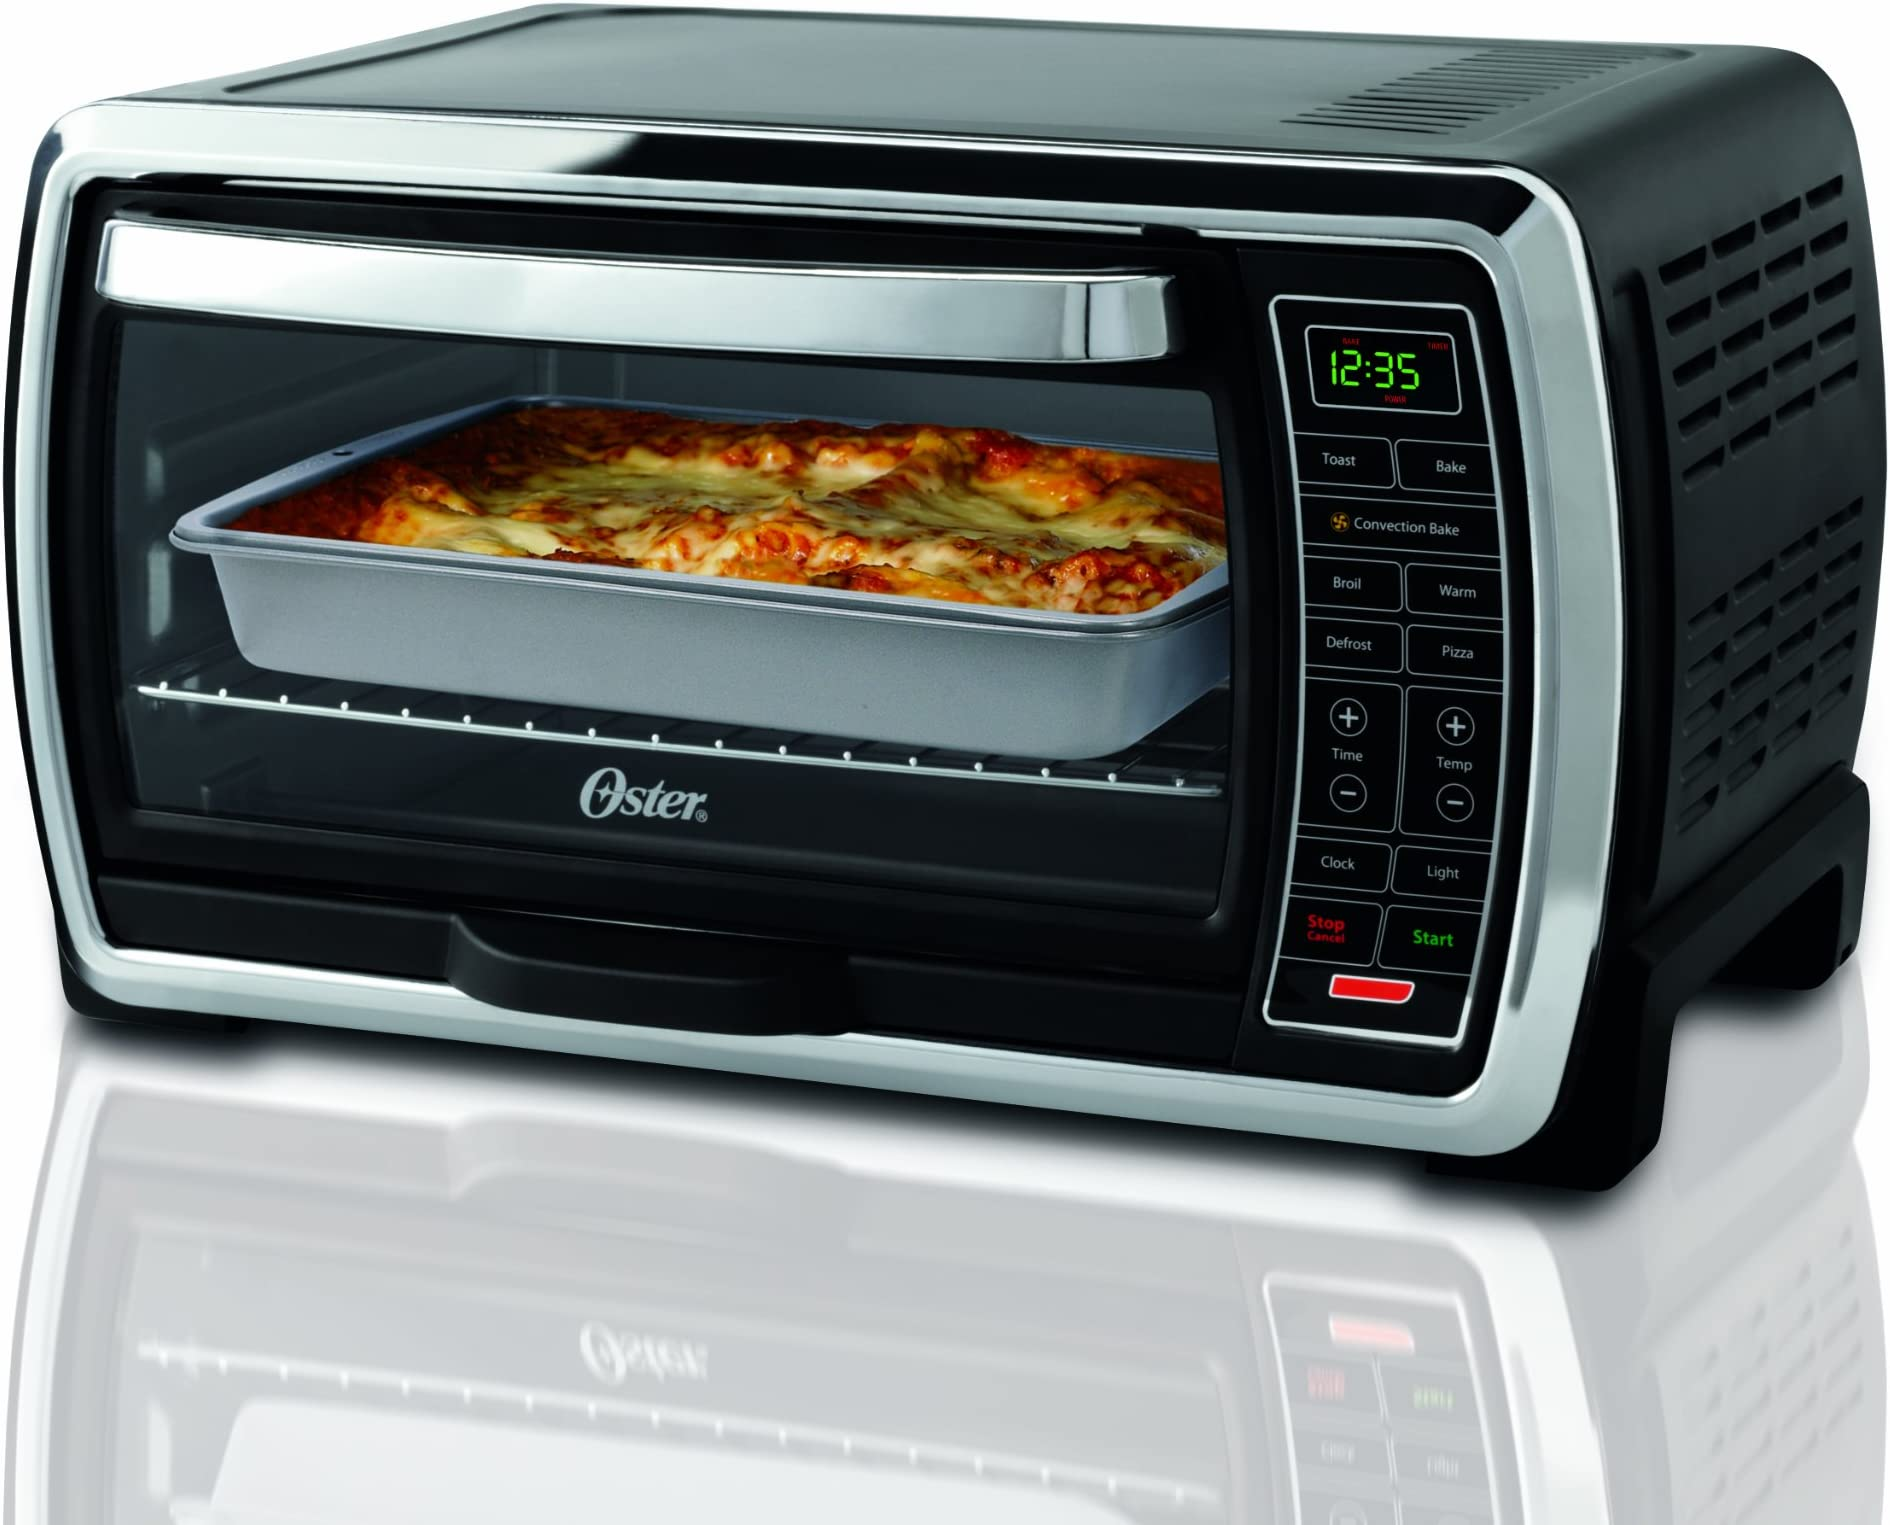 10 Best Countertop Ovens 2019 Home Reviewed